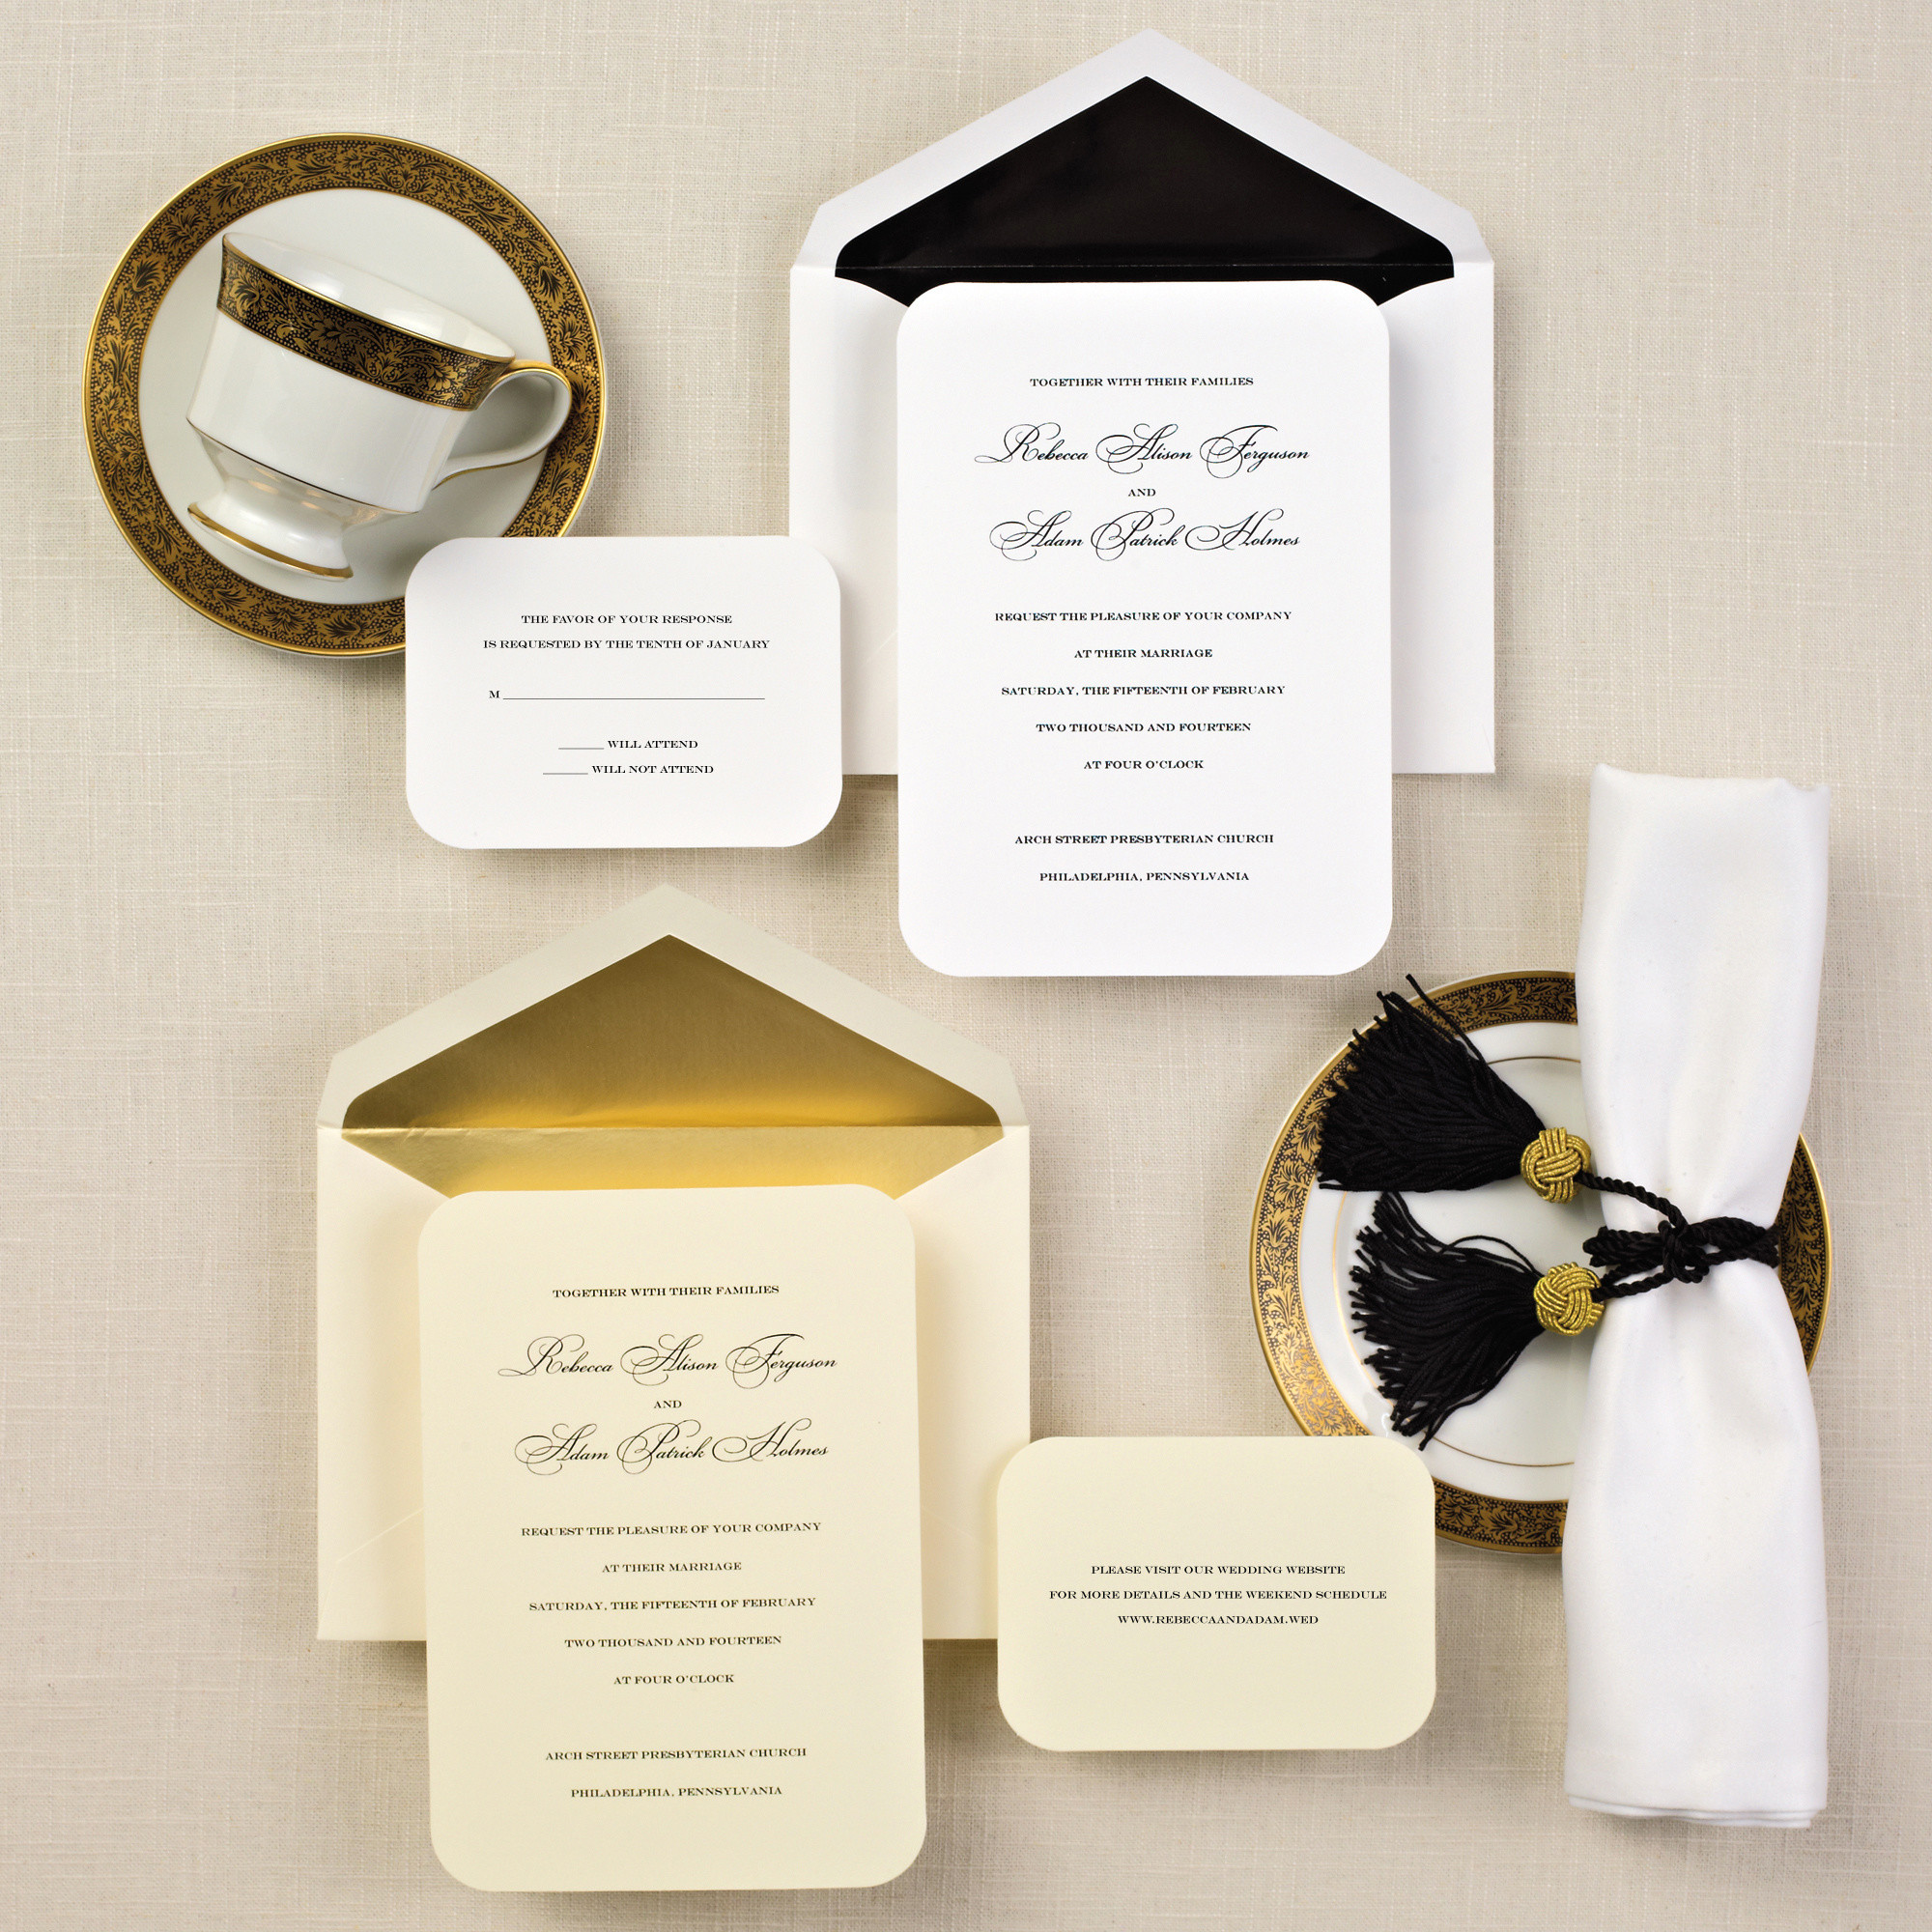 simple elegance wedding invitation | classic wedding invitations, Wedding invitations